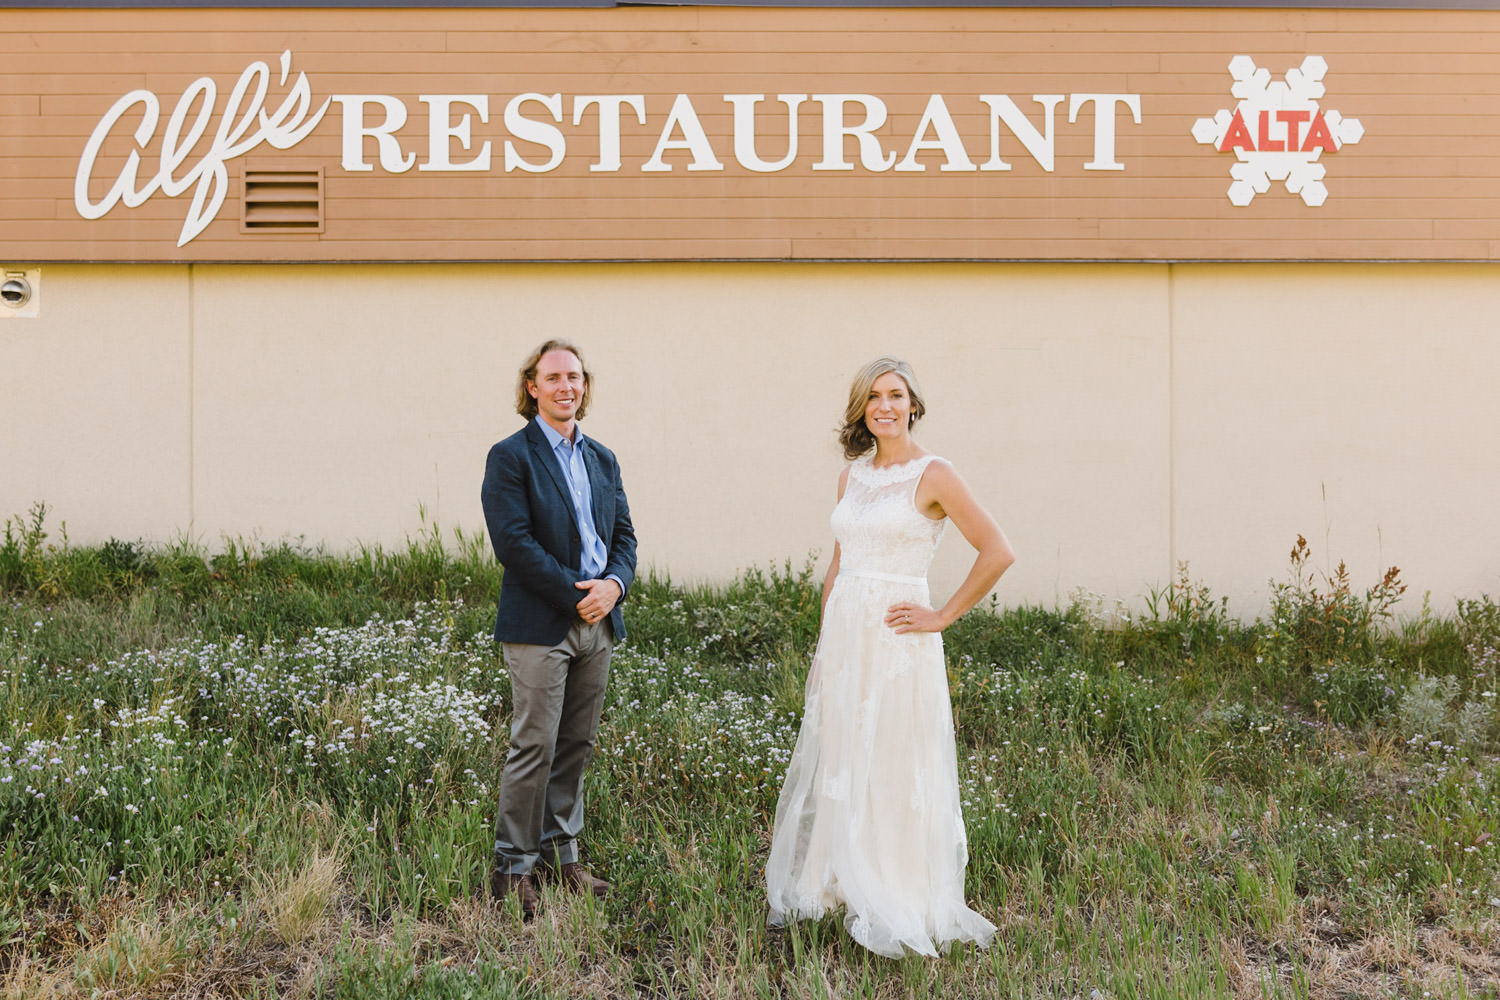 Alta Wedding bride and groom at Alf's Restaurant photo